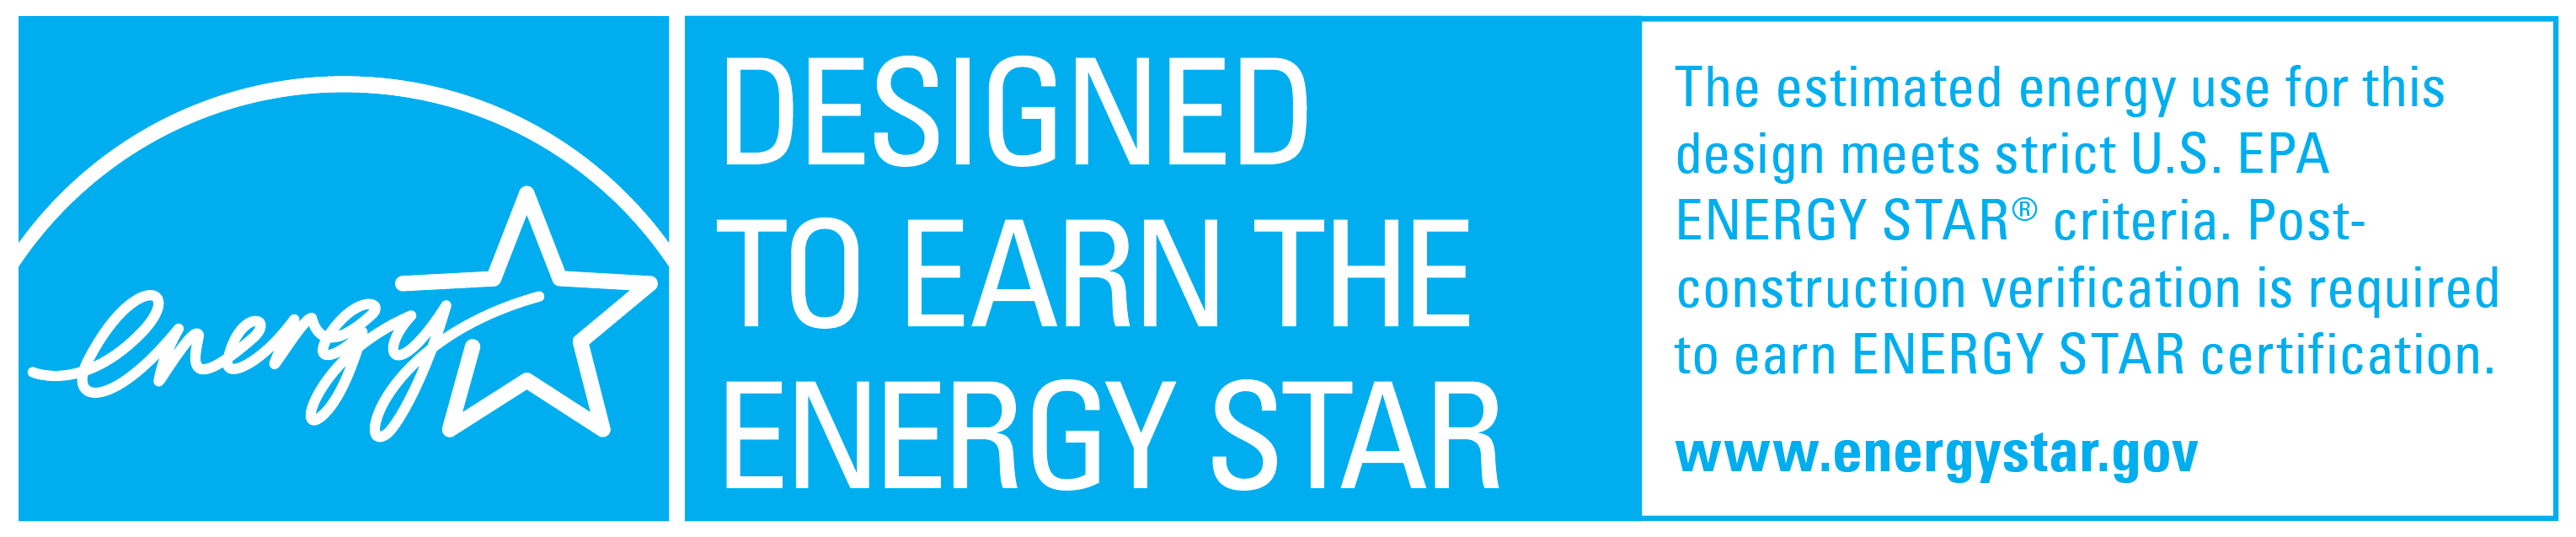 Designed to Earn the ENERGY STAR logo